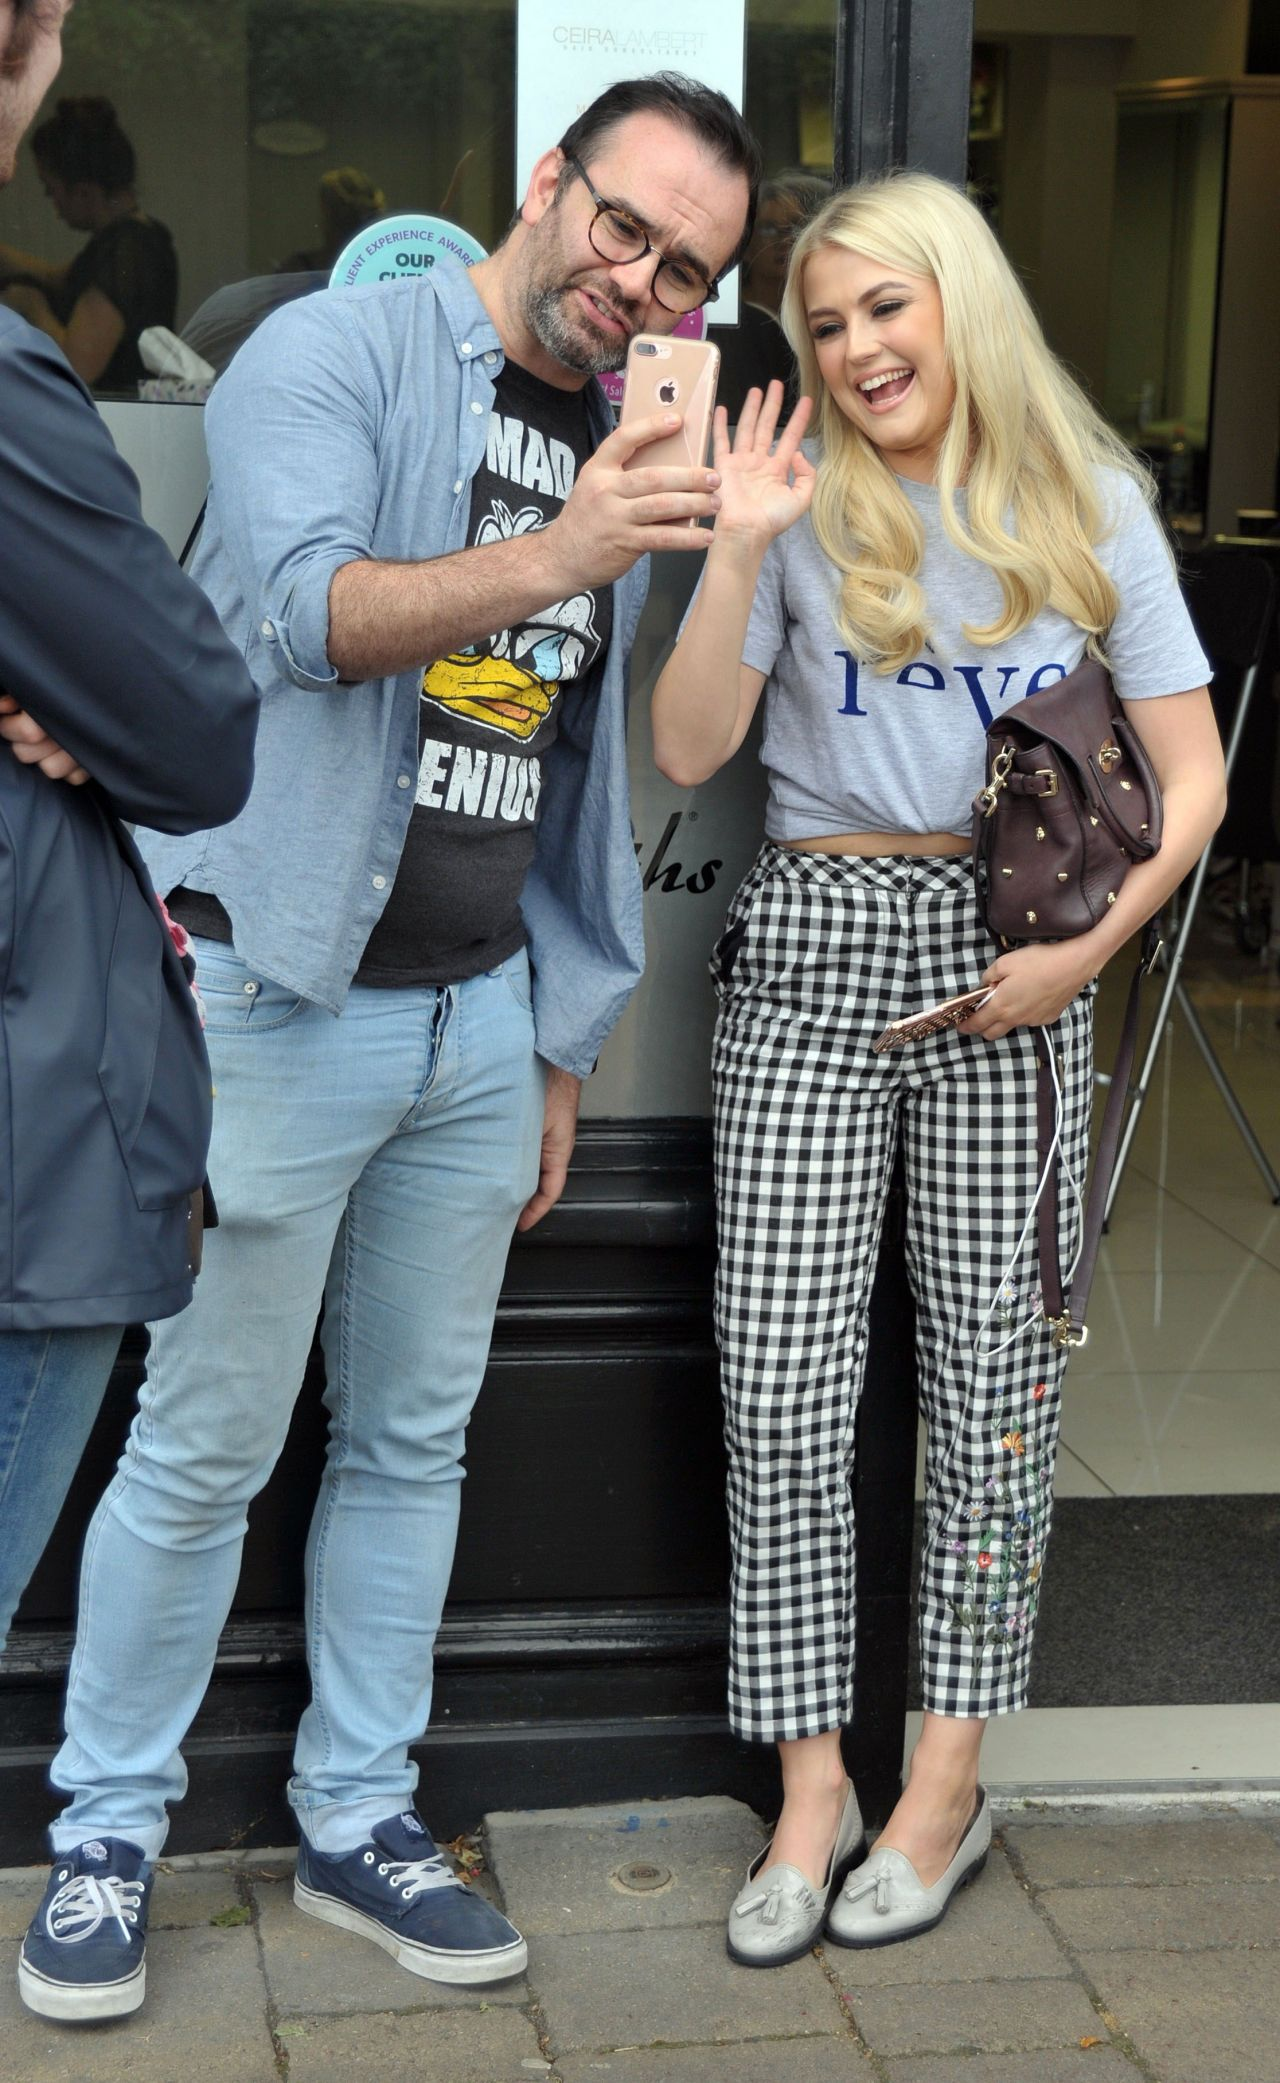 lucy-fallon-cute-style-at-ceira-lamberts-hair-salon-in-shankill-village-dublin-06-17-2017-4.jpg (1280×2083)